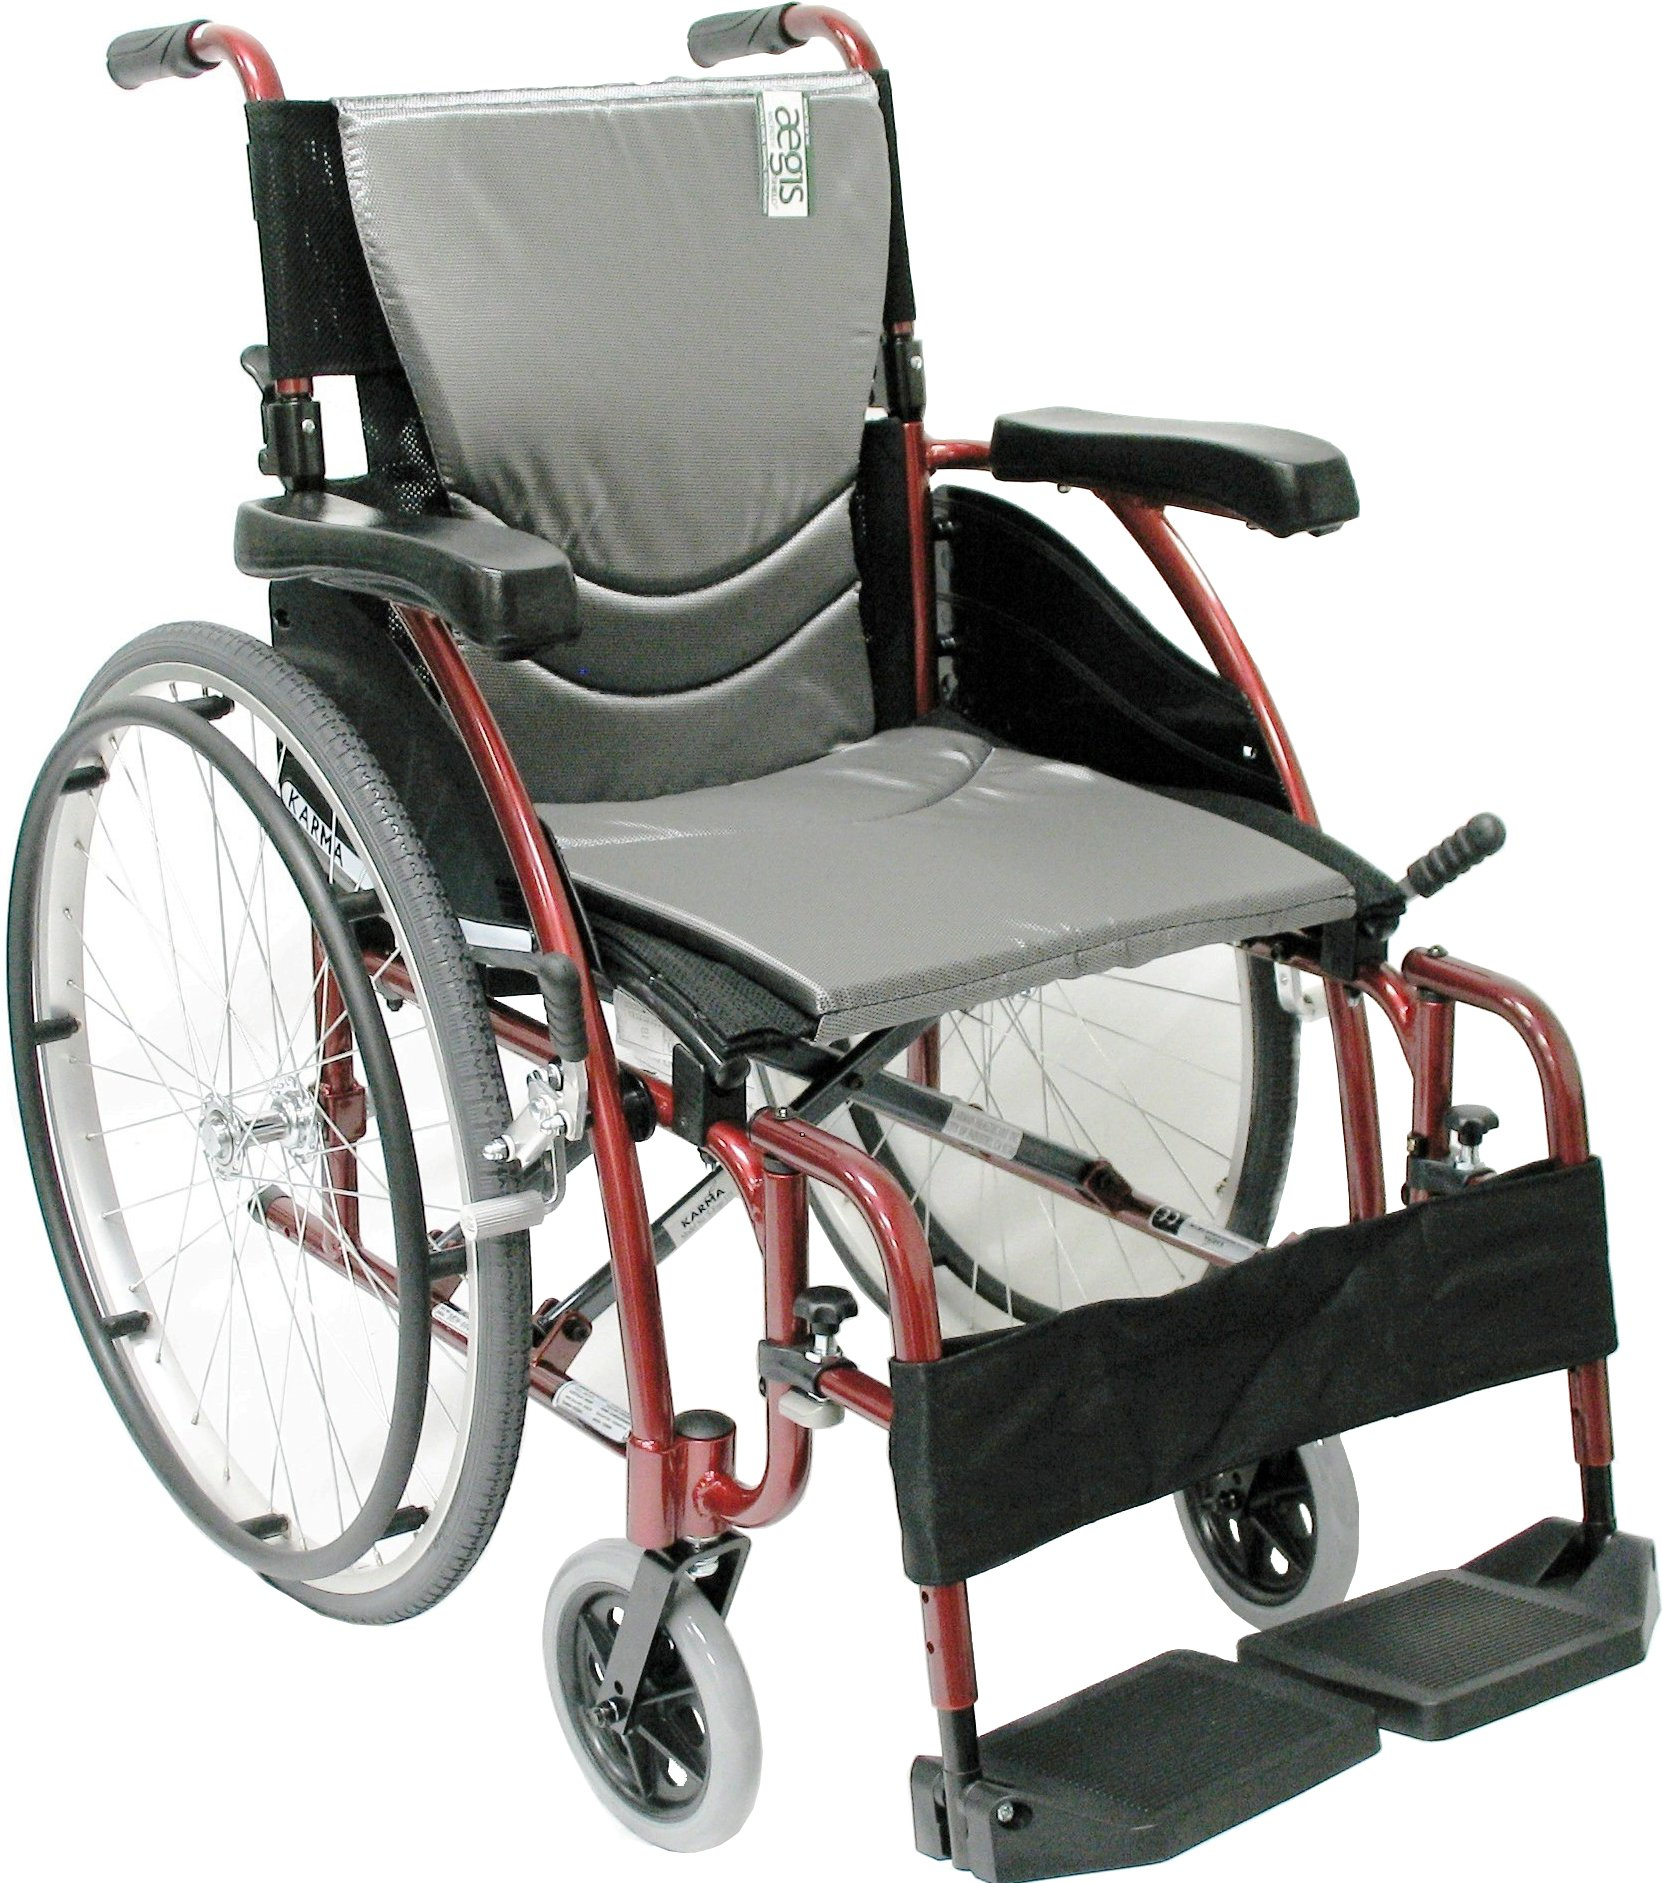 Karman Healthcare S-115 Ergonomic Ultra Lightweight Manual Wheelchair, Rose Red, 16 Inches Seat Width